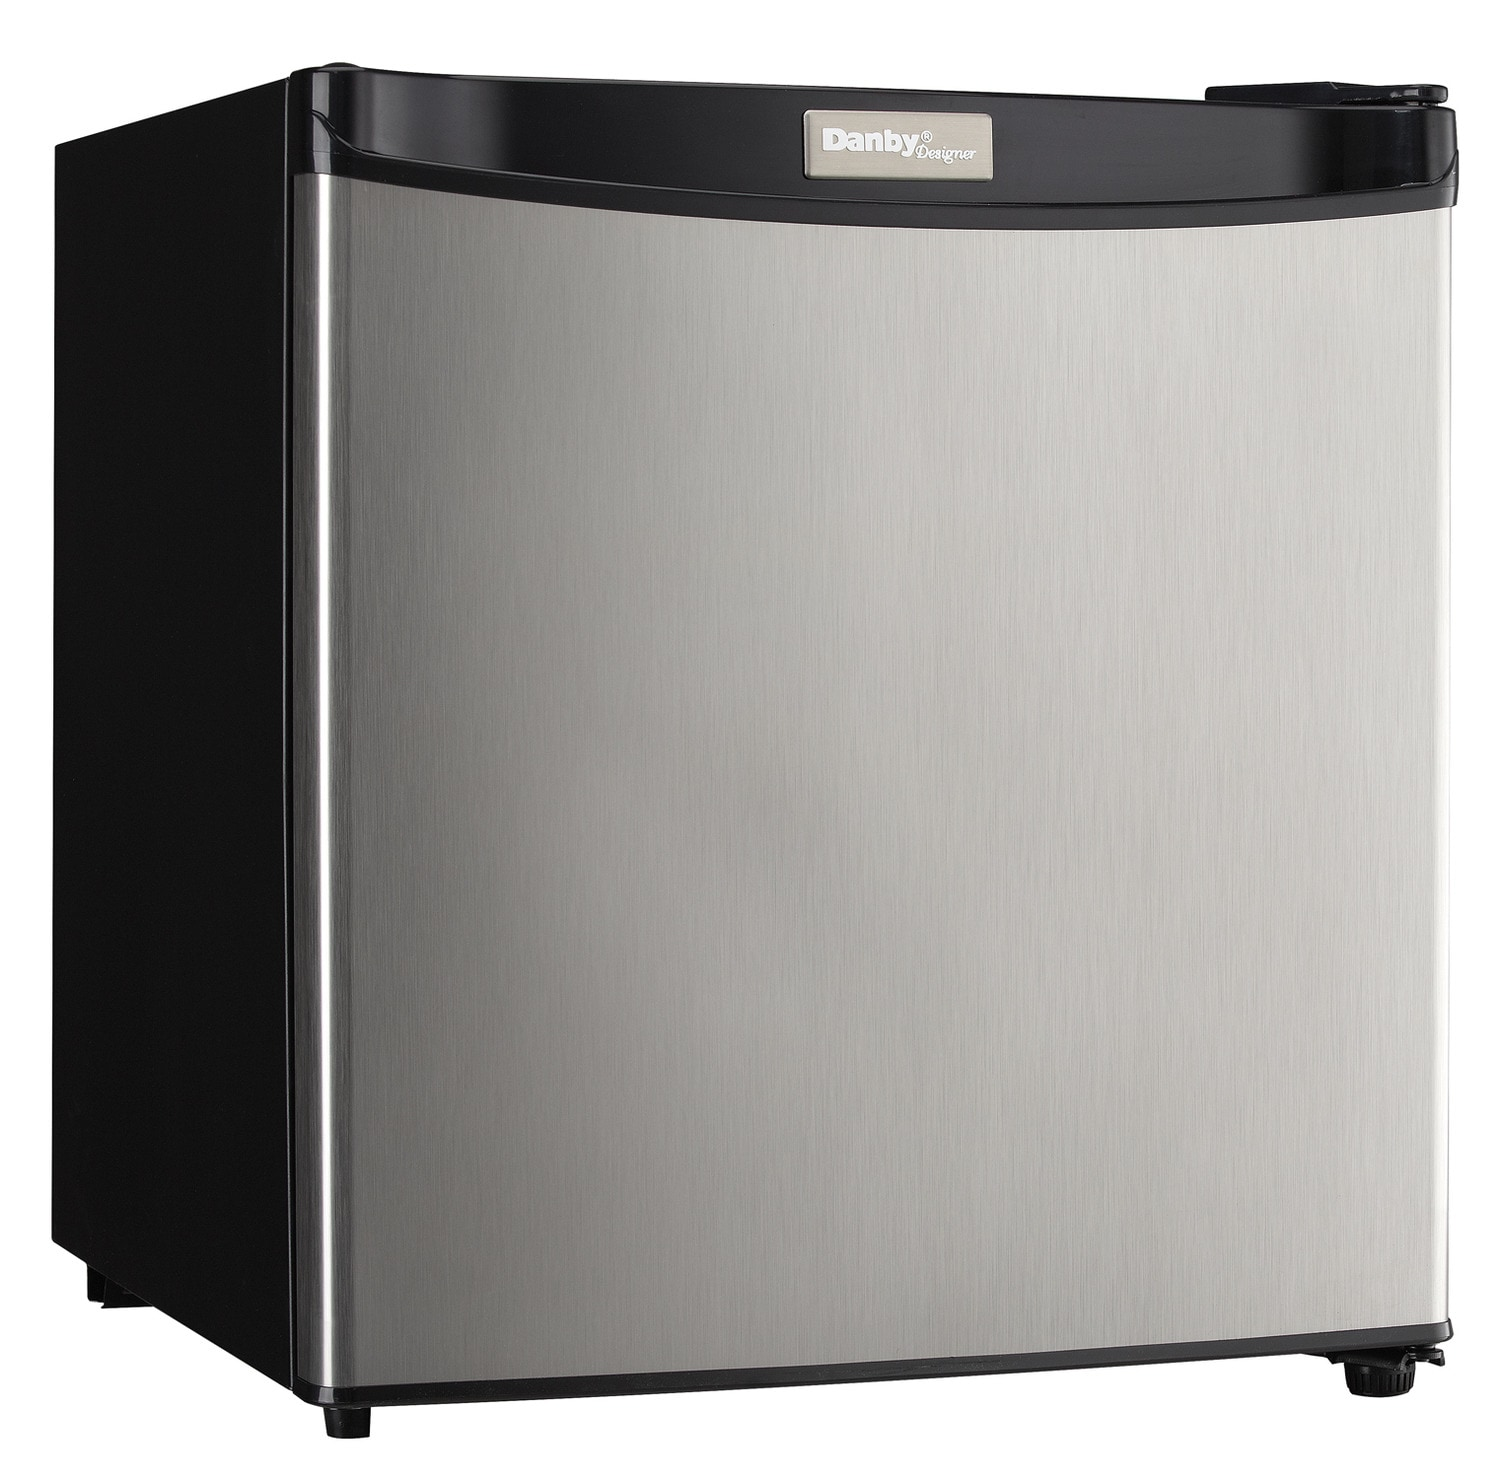 Refrigerators and Freezers - Danby Stainless Steel Compact Refrigerator (1.6 Cu. Ft.) - DCR016A3BSLDD